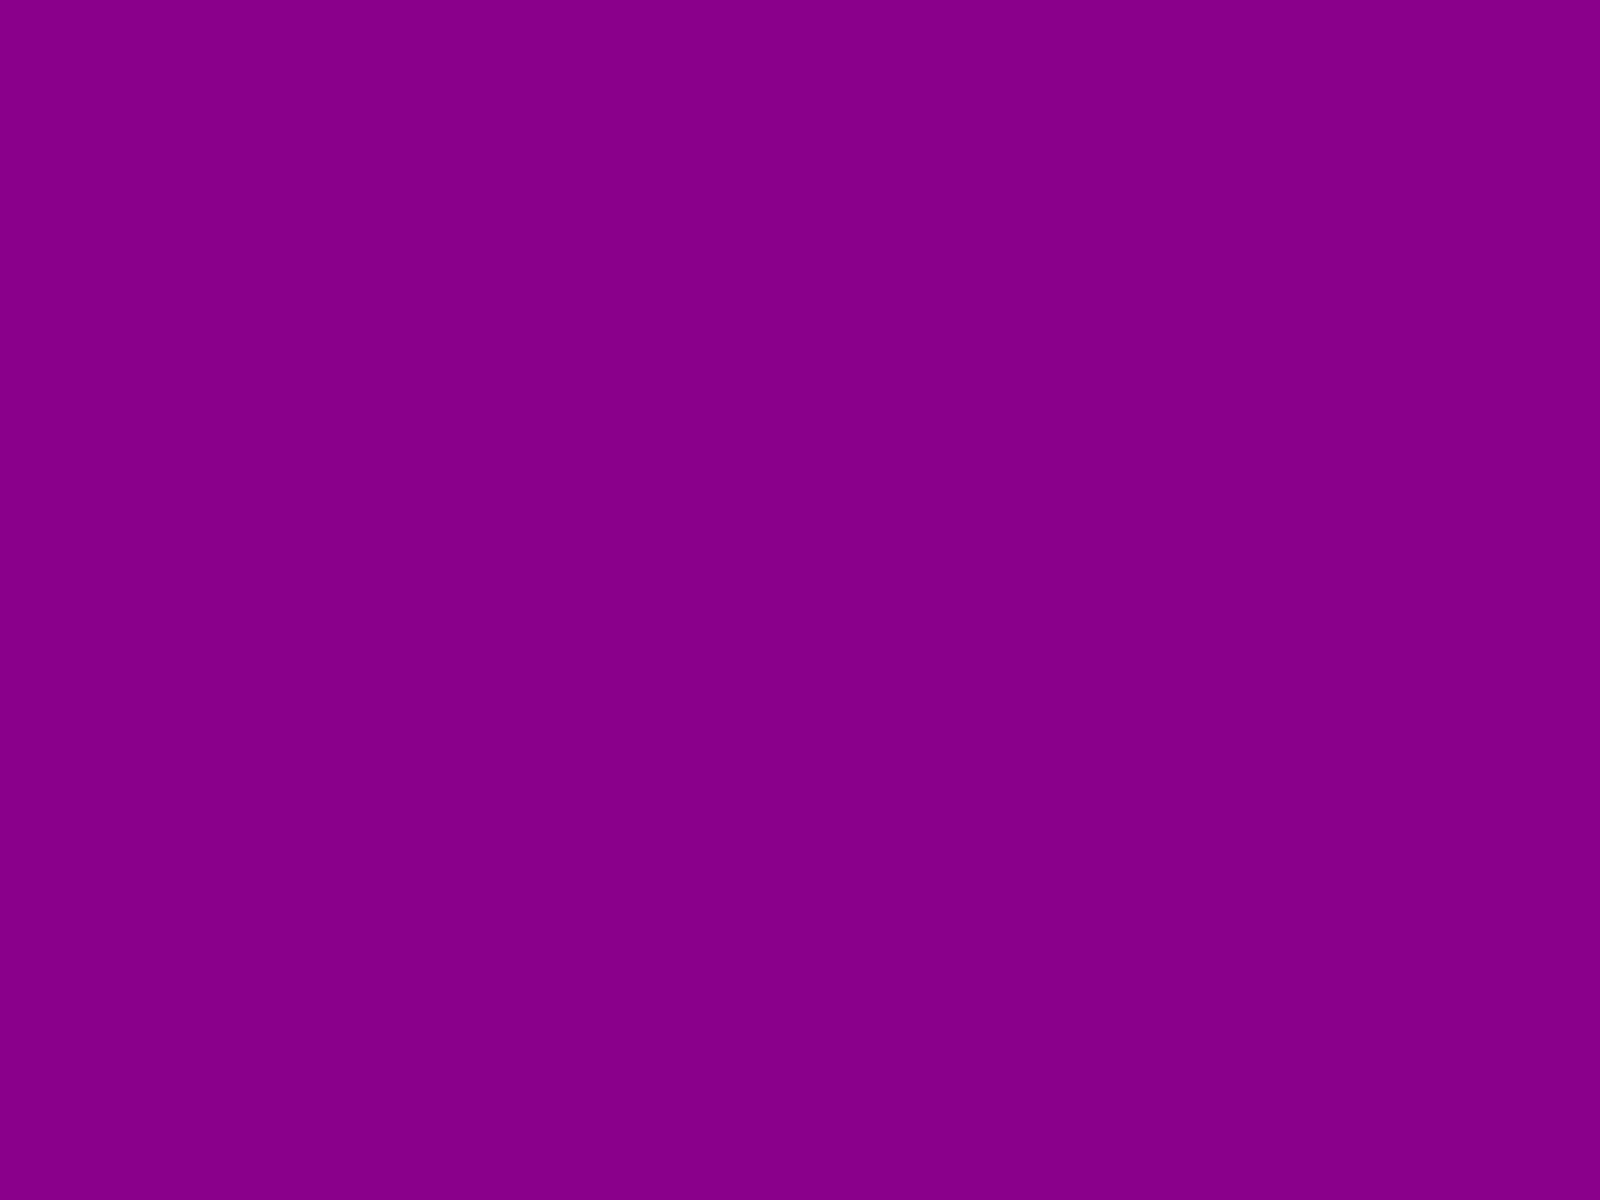 1600x1200 Dark Magenta Solid Color Background